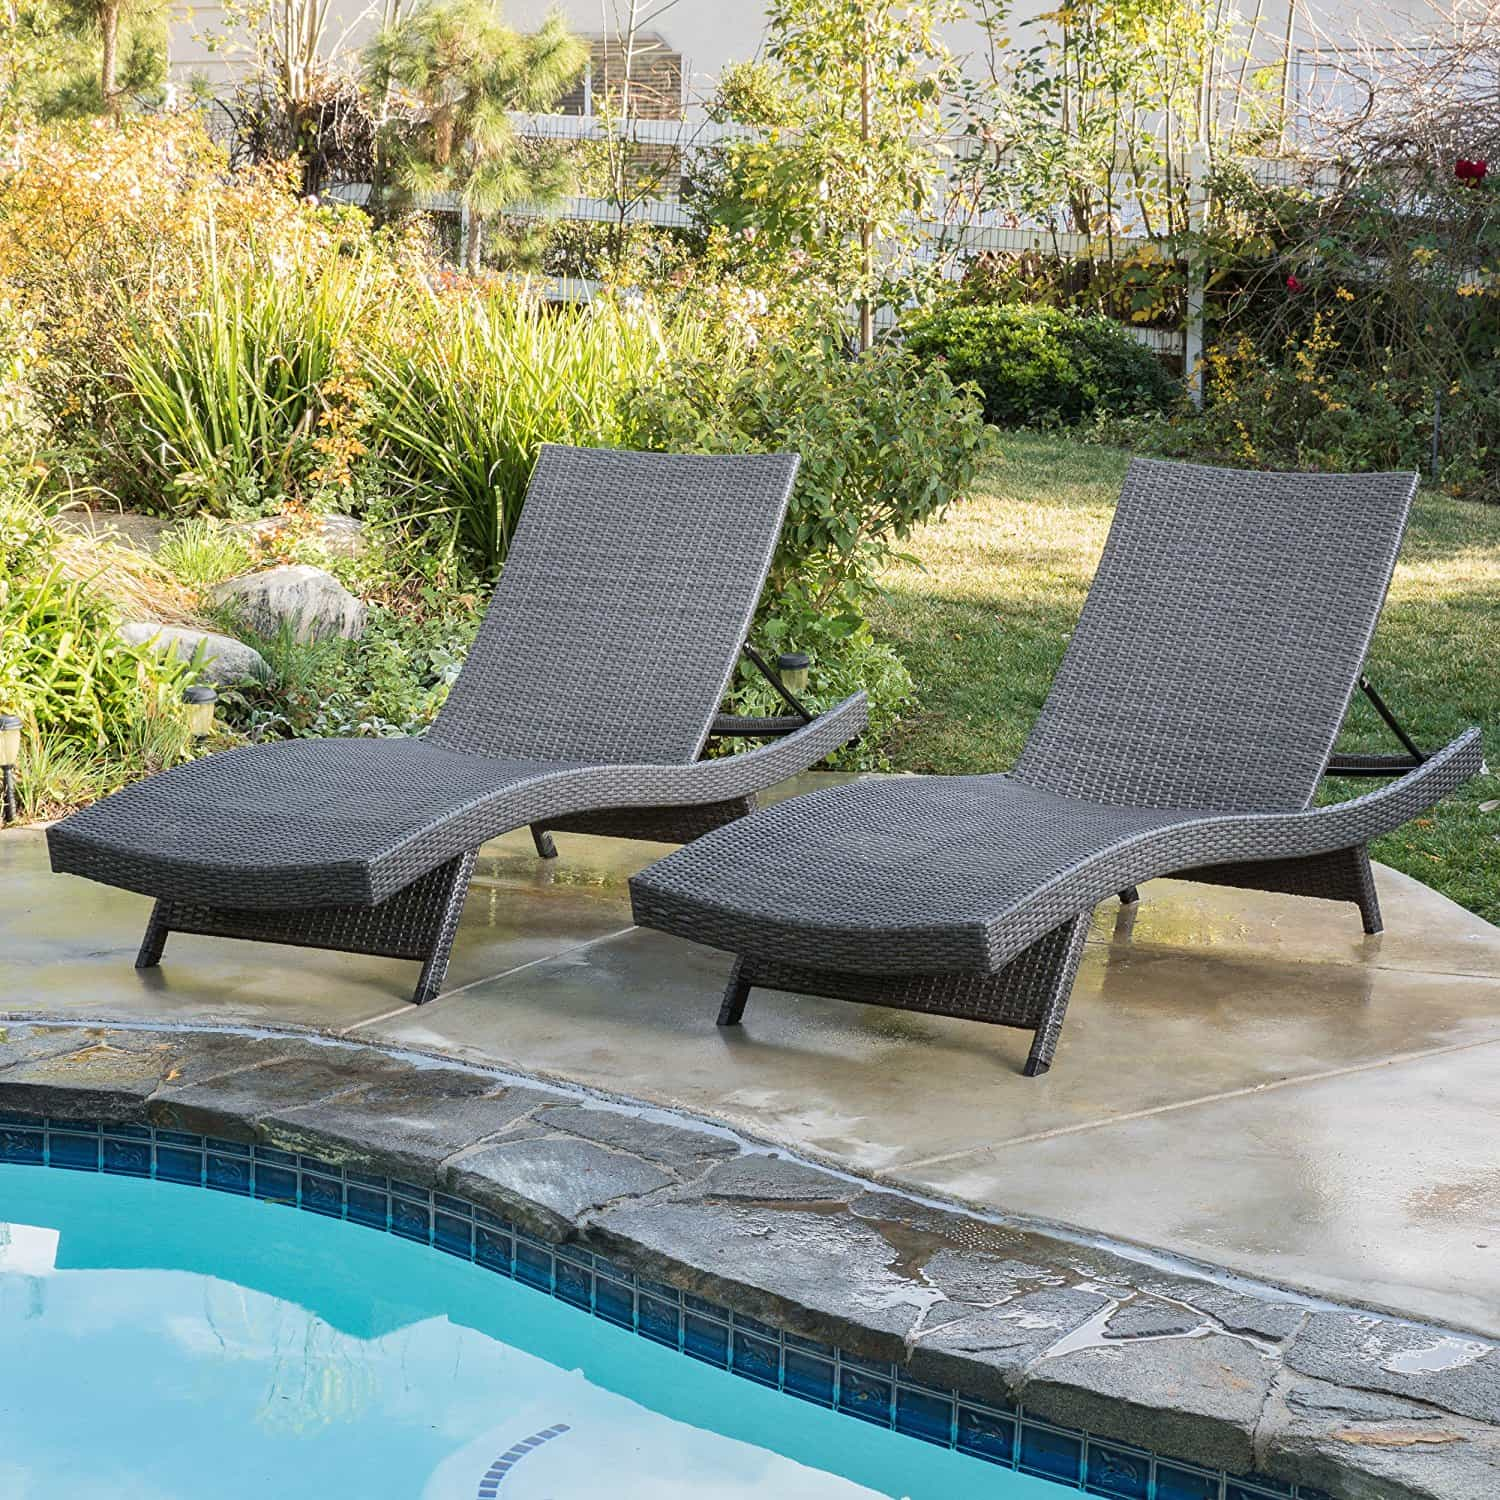 The best outdoor lounge chair what to look for 2018 for Best deals on outdoor patio furniture